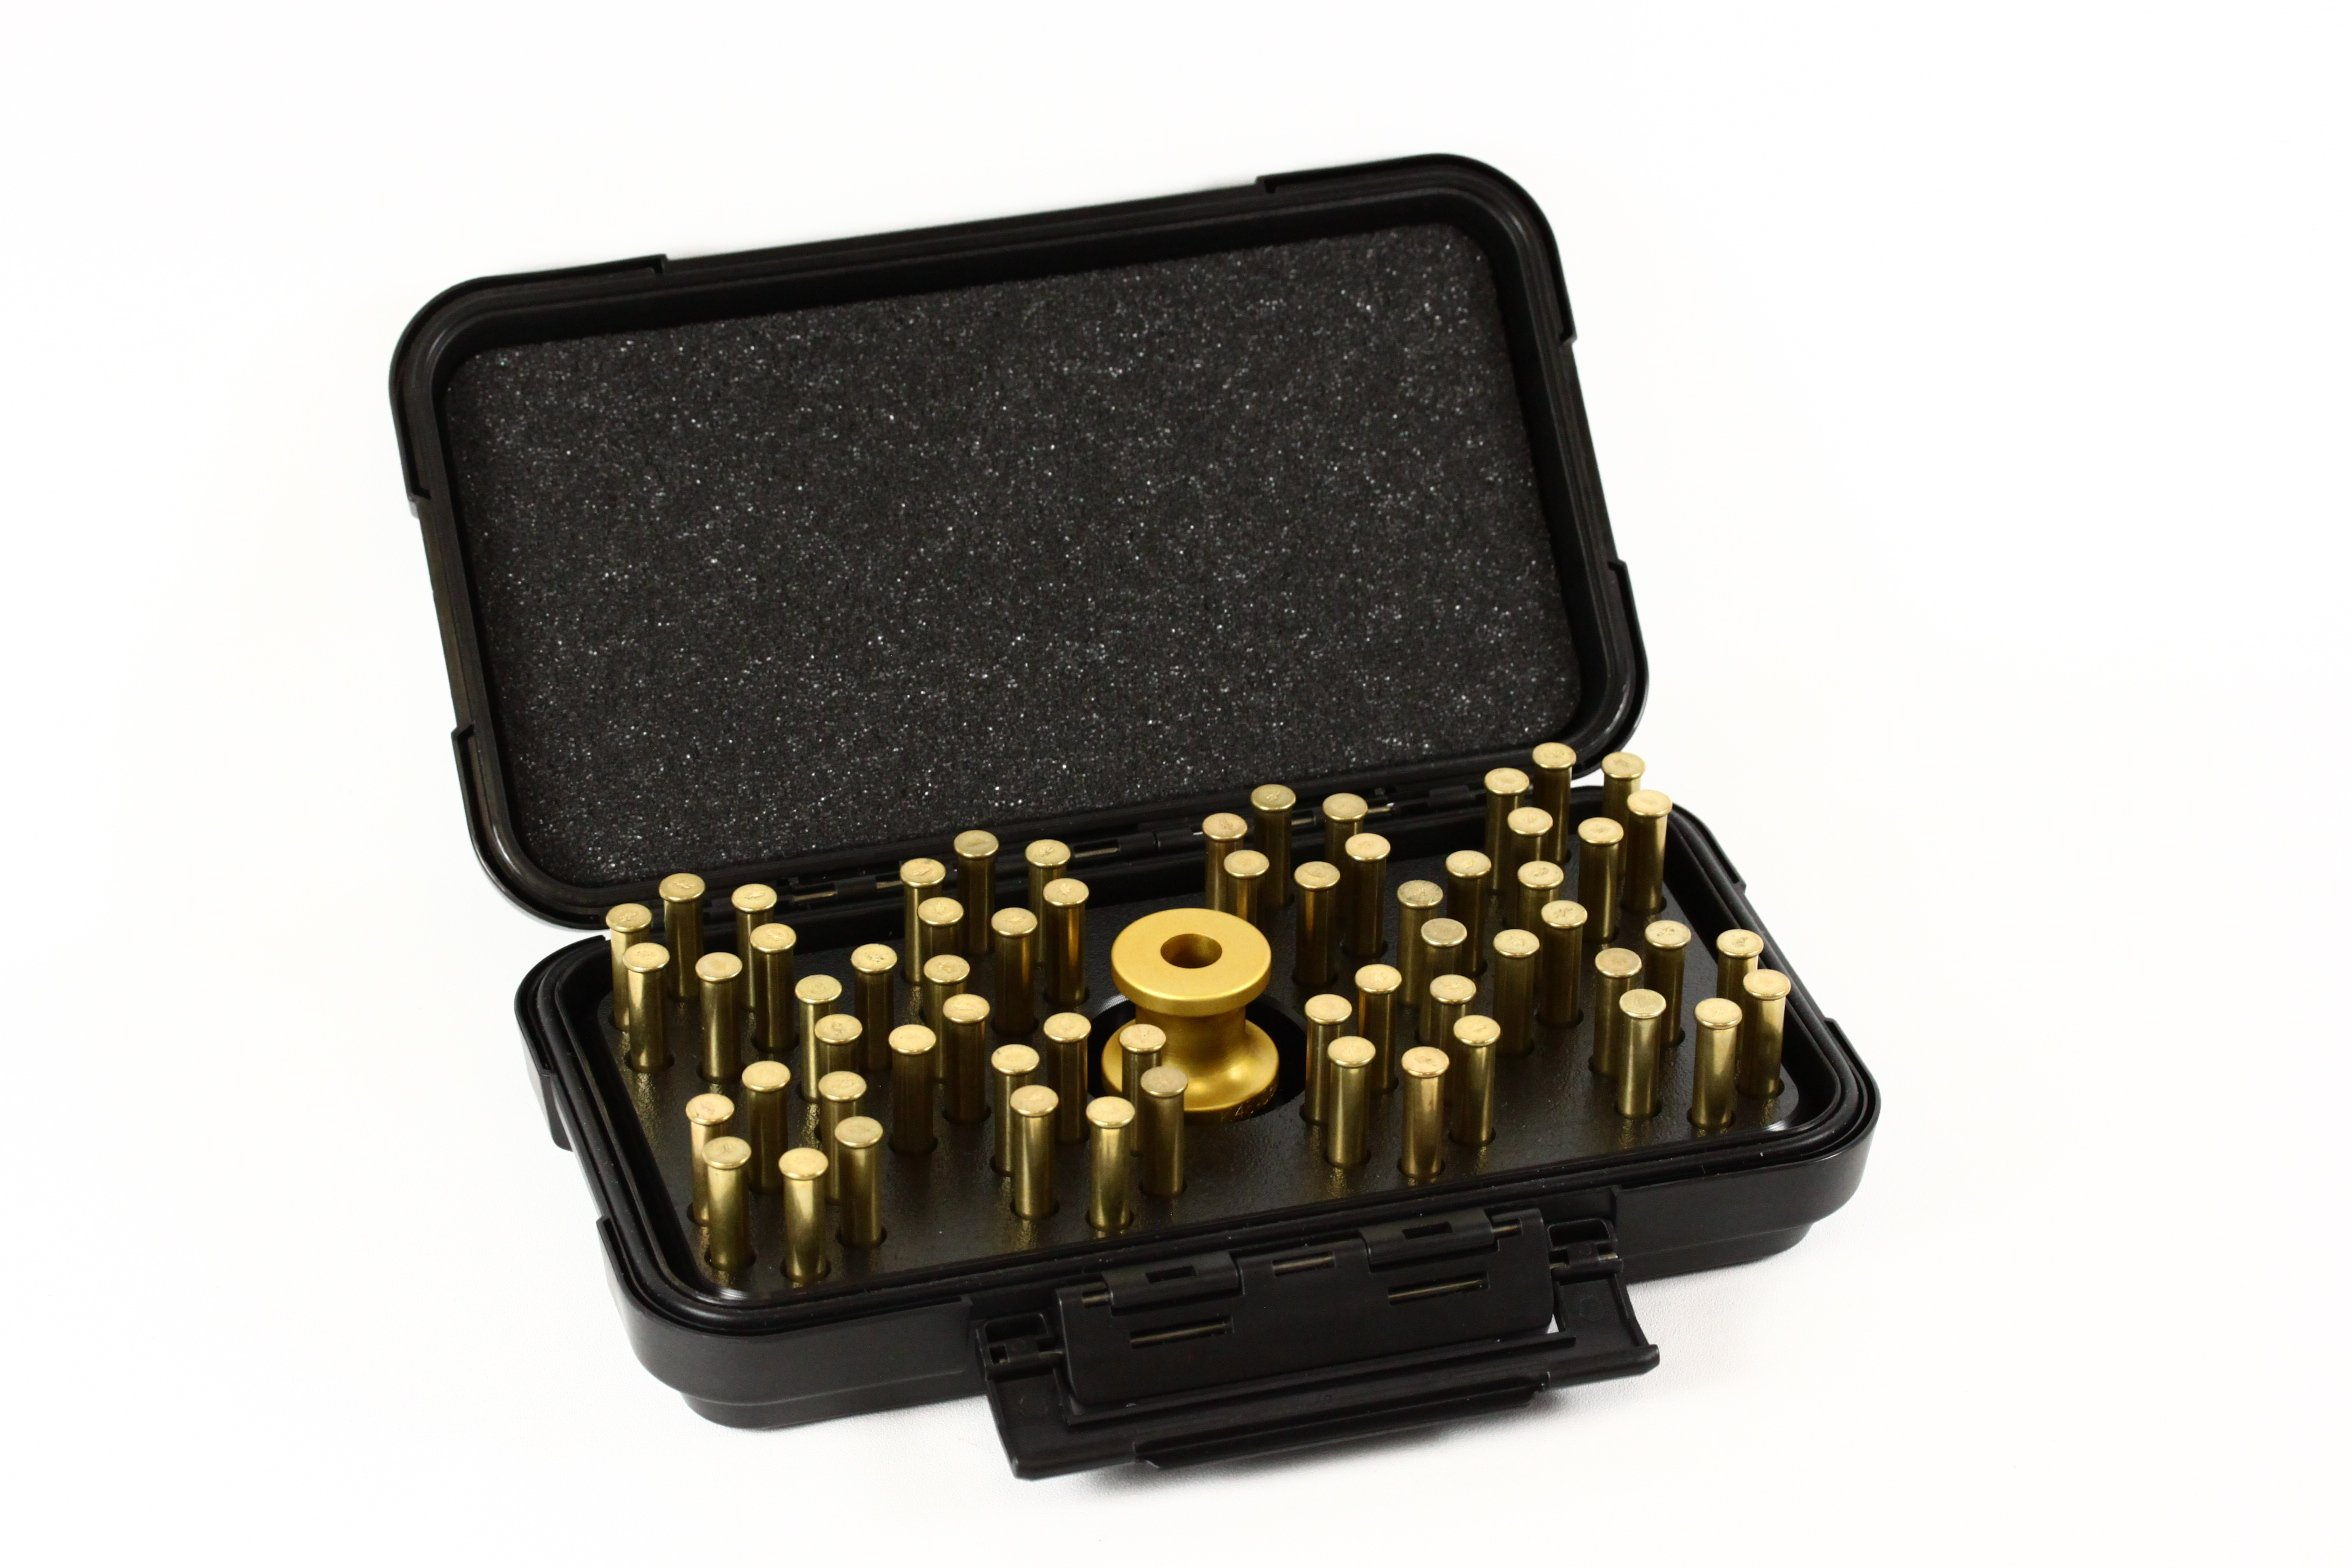 Speed Beez K Frame 22 Magnum 6 Shot Loading Block and Case Speed Loader Bundle for The Smith & Wesson Model 48 648 by Speed Beez